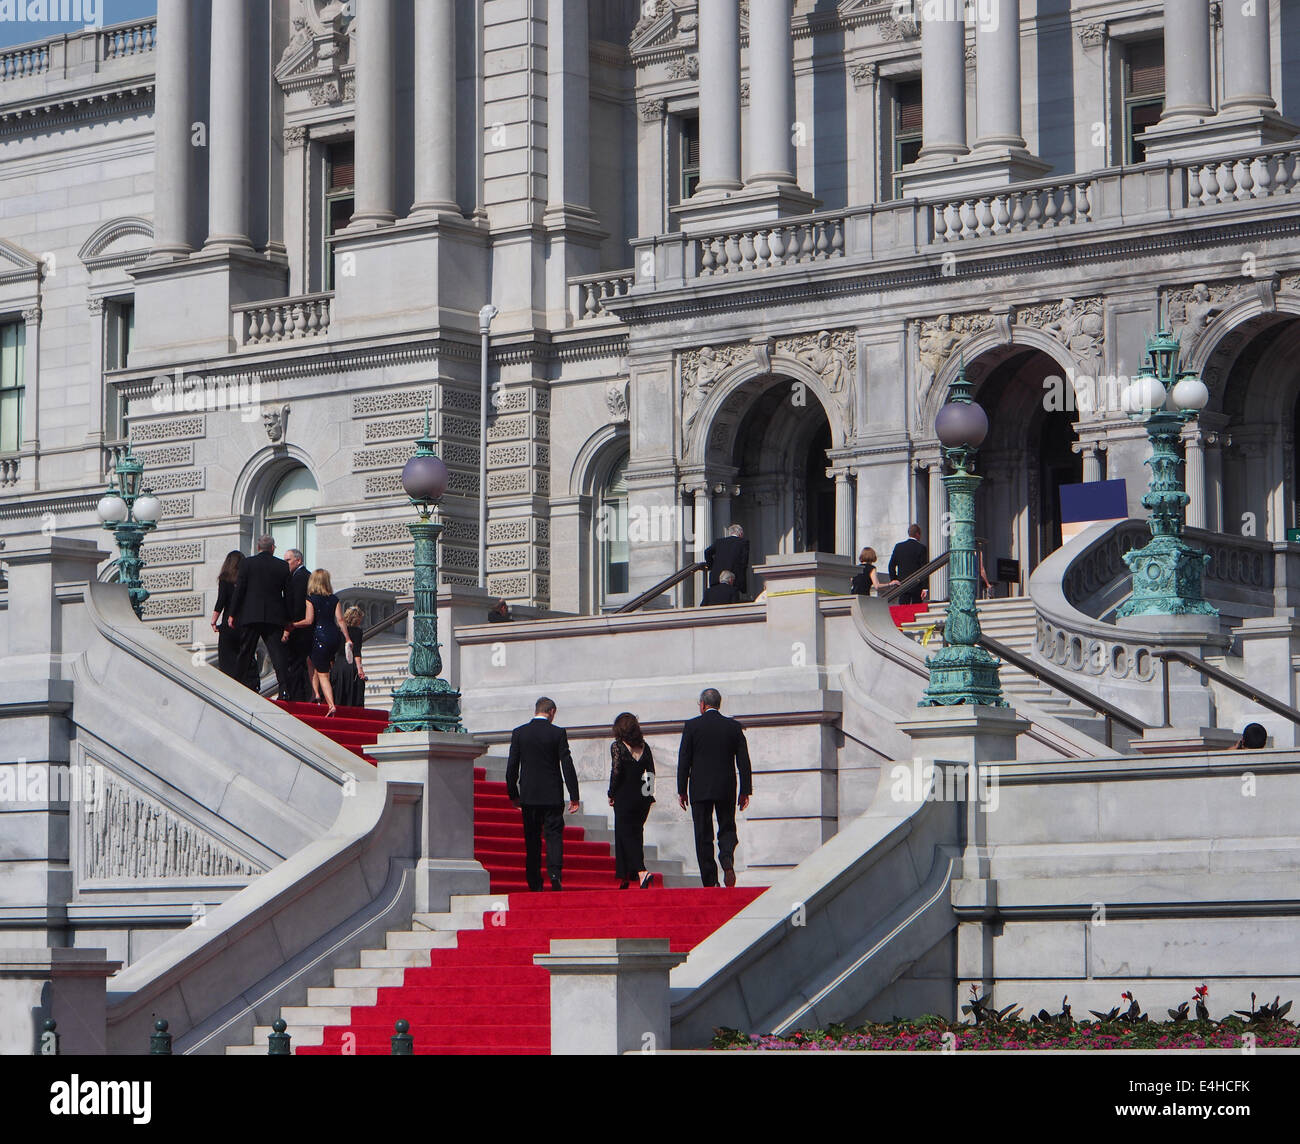 Library of Congress front entrance steps - Stock Image